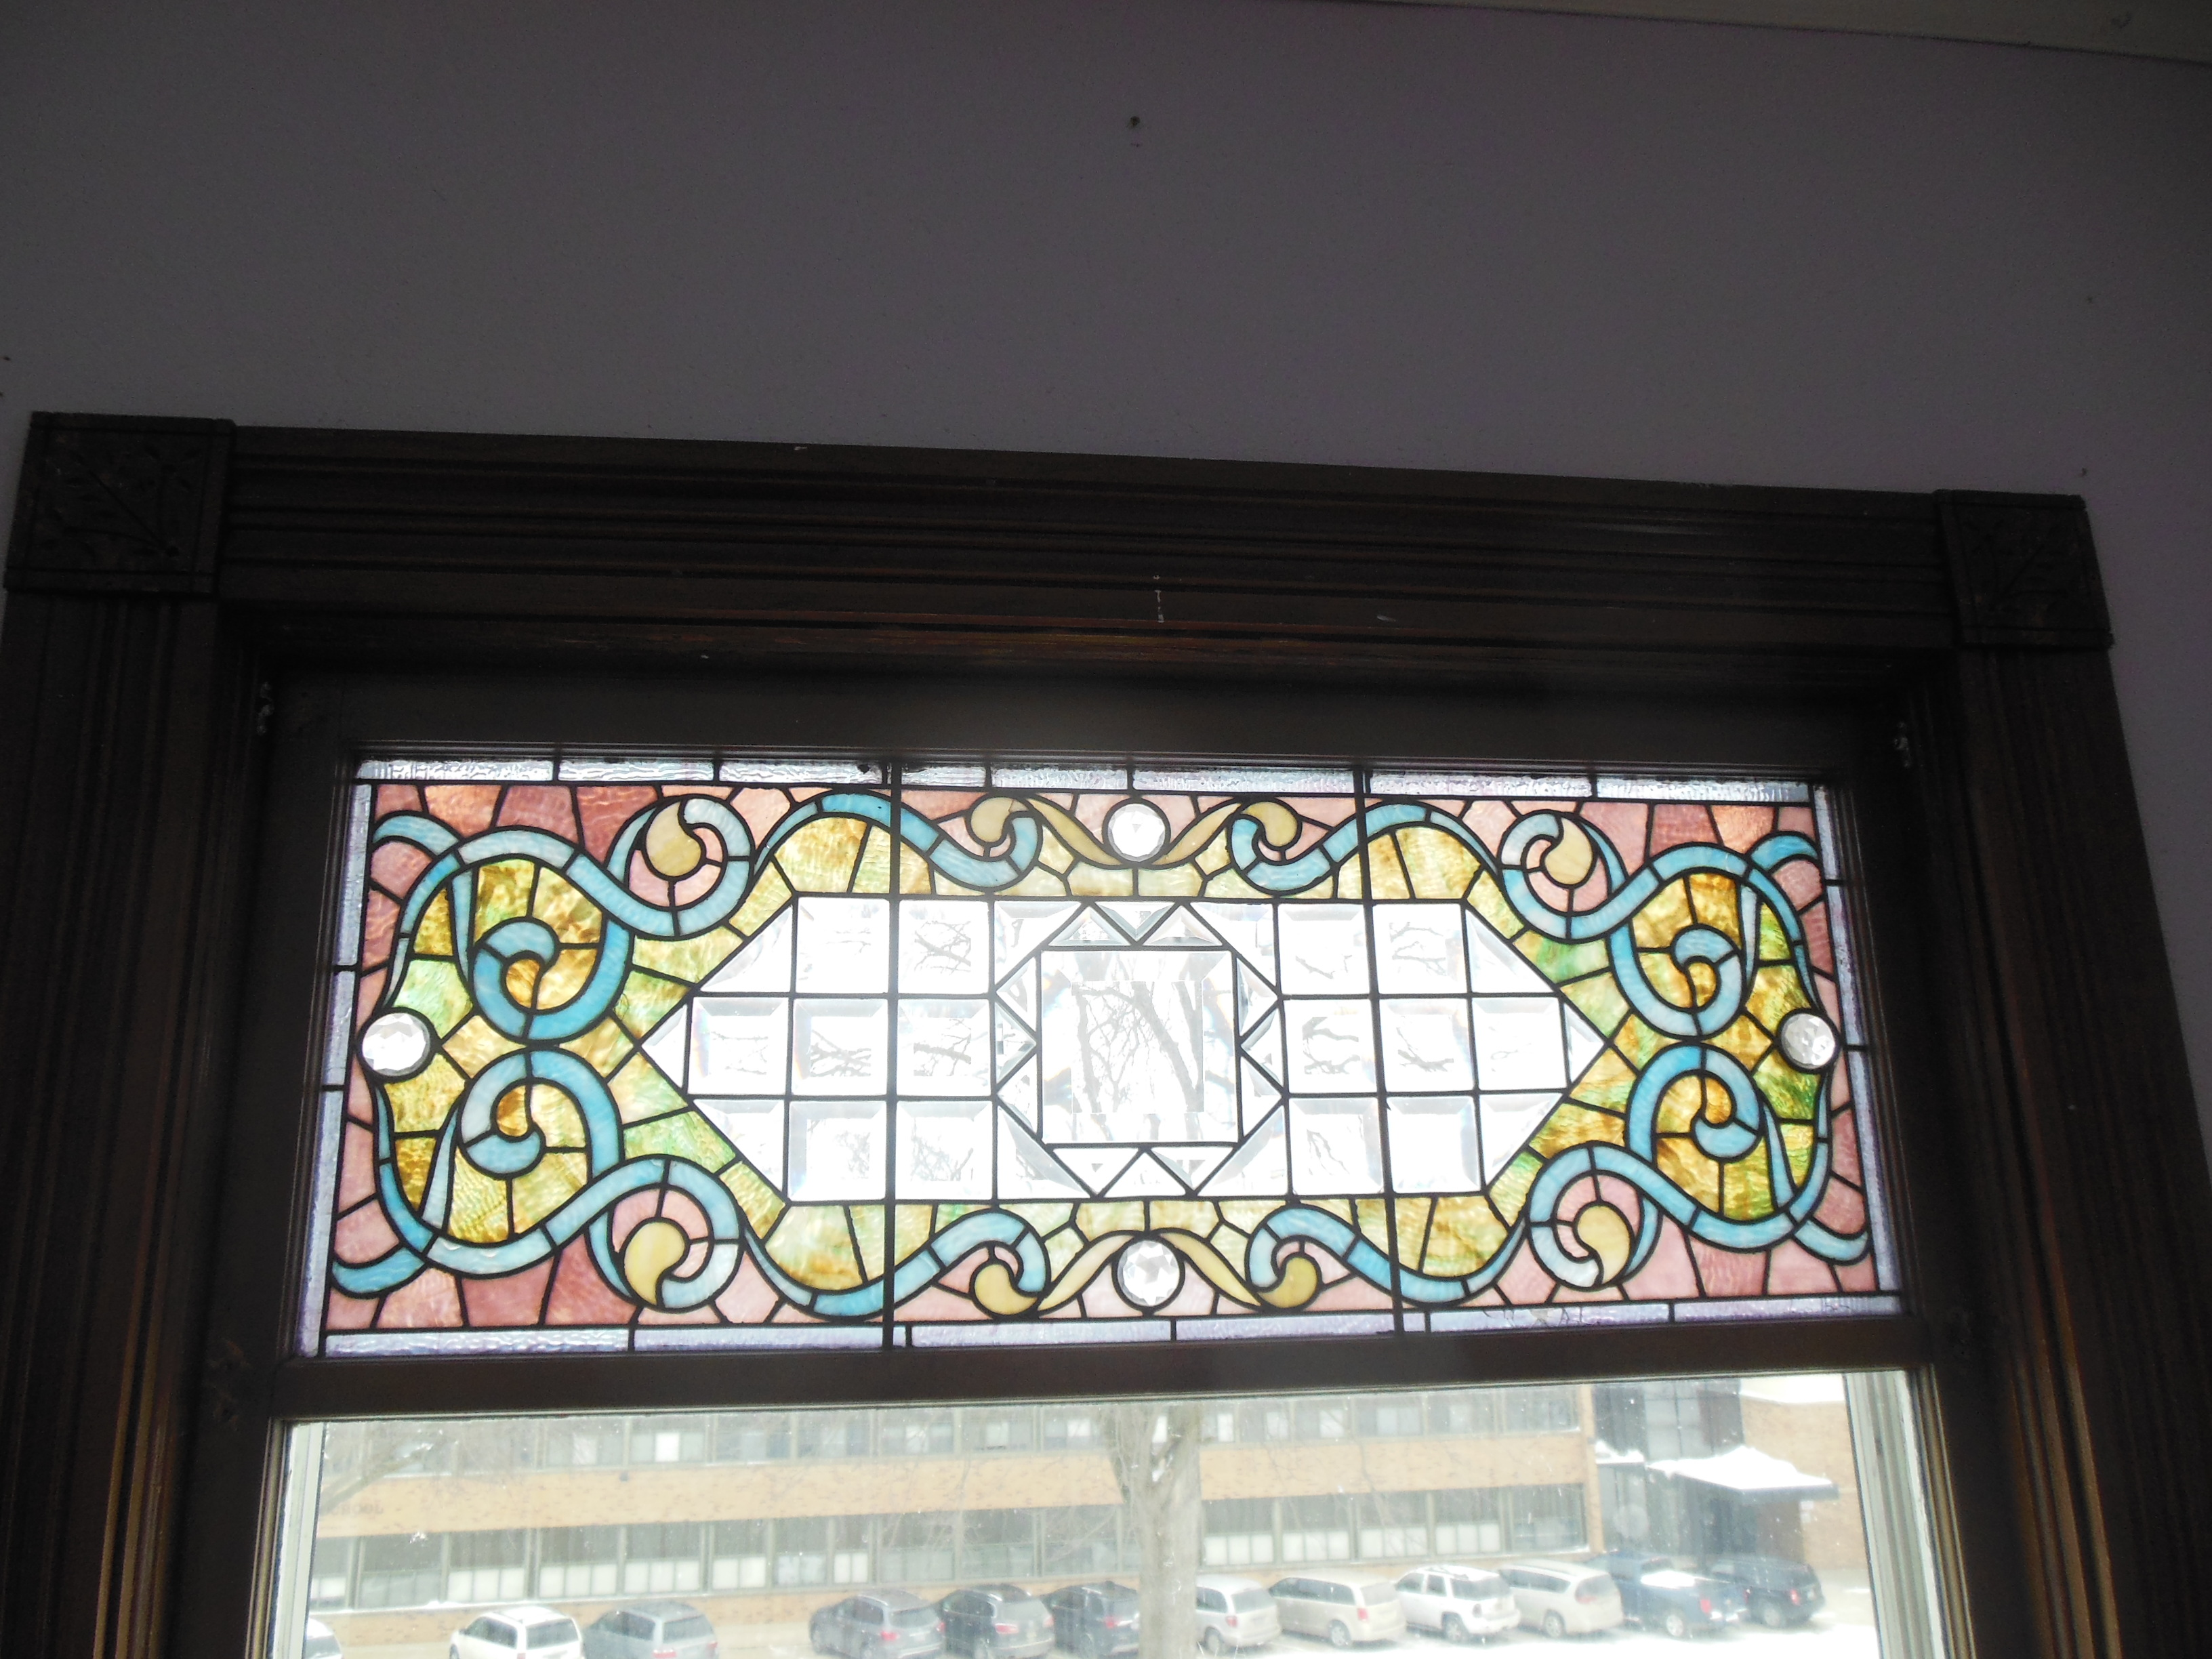 509 Normal, stained glass